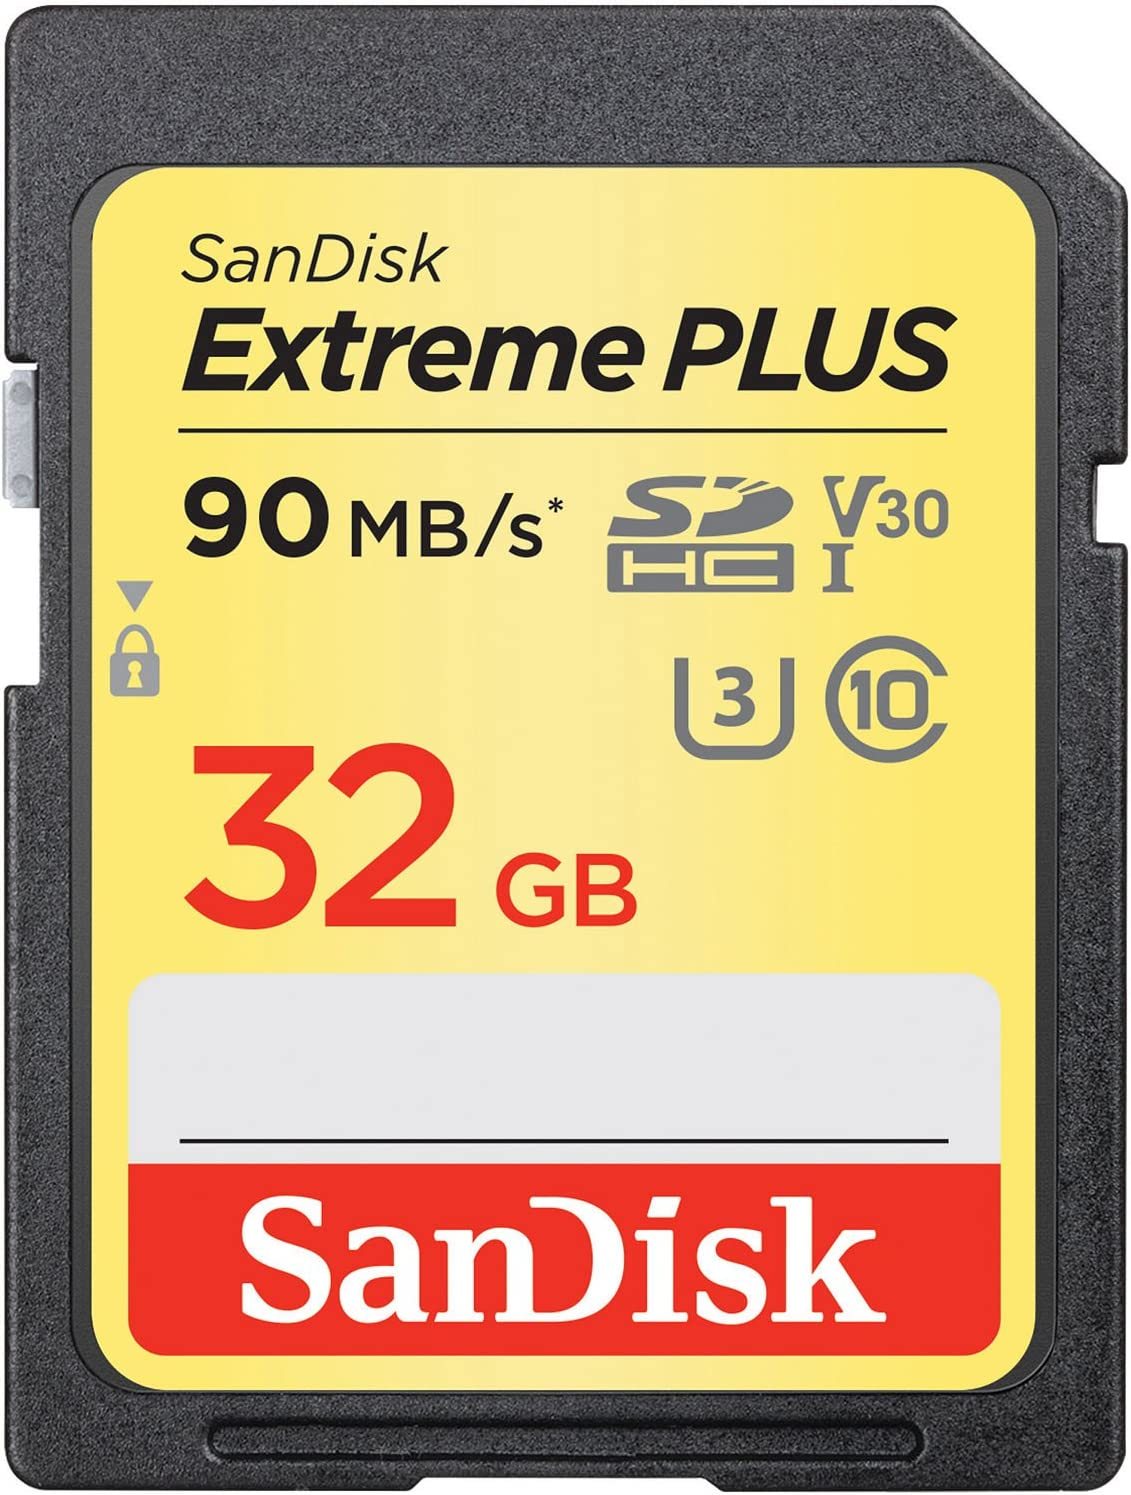 SanDisk Extreme PLUS 32GB SDHC UHS-I/V30/U3/Class 10 Card - Up to 90MB/s Read & 60MB/s Write Speed